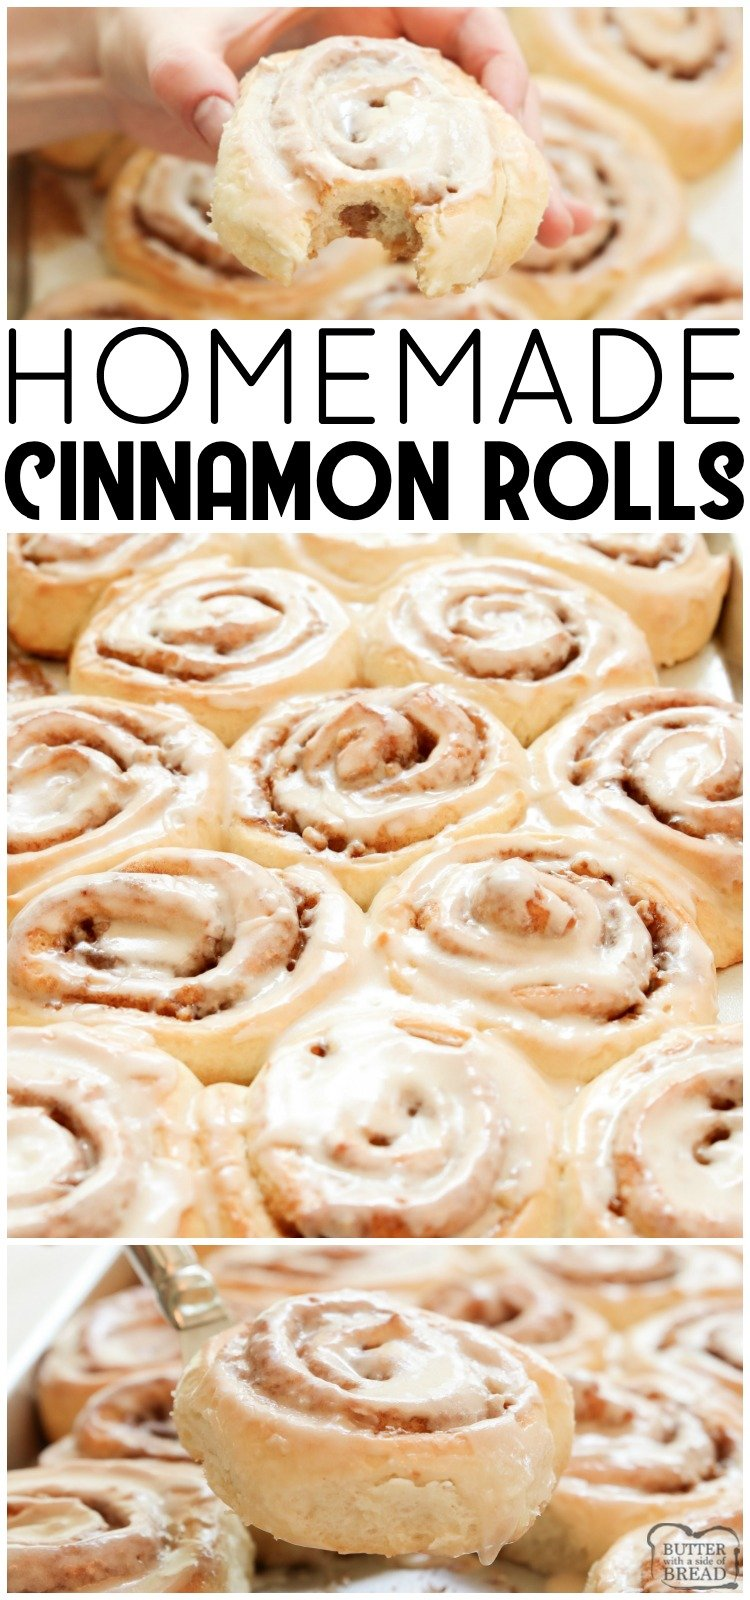 Cinnamon Rolls made from scratch that yield feather-light sweet rolls with pecans, cinnamon and a lovely vanilla glaze. Best cinnamon roll recipe ever!